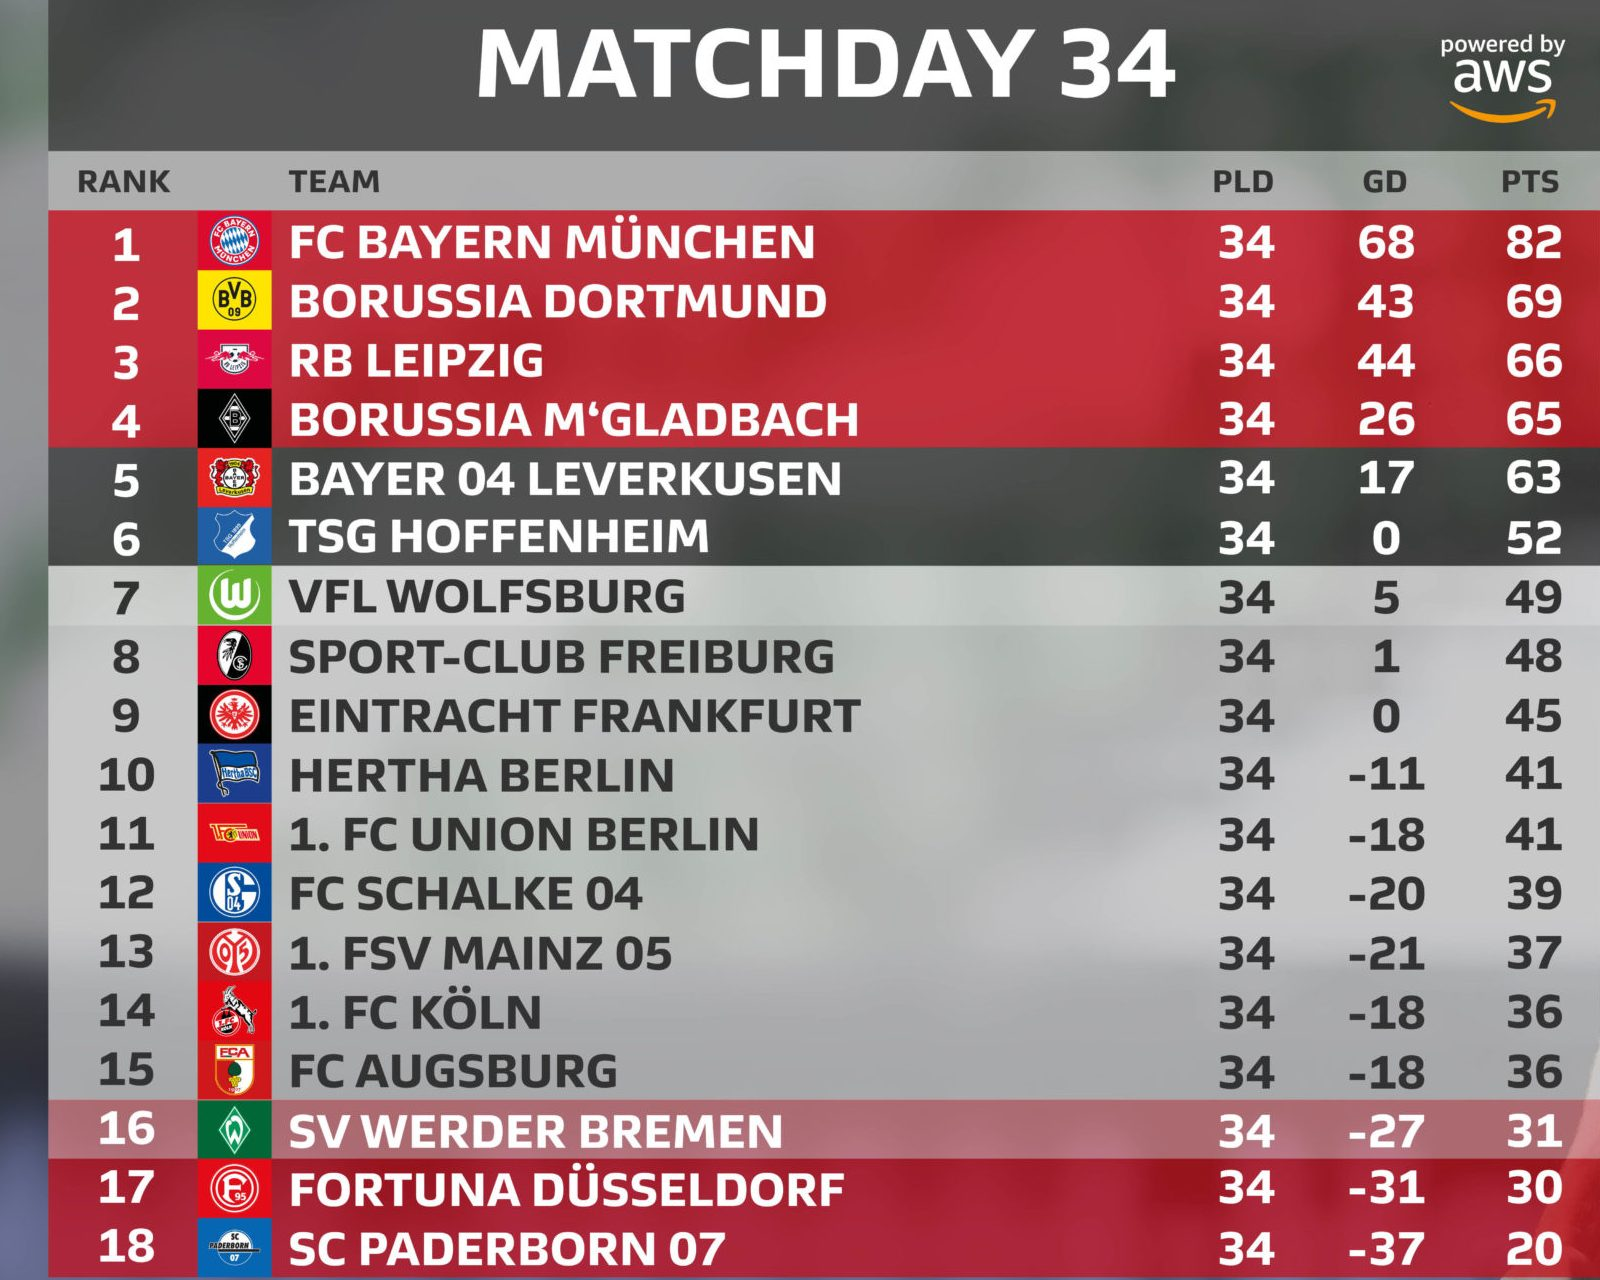 bundesliga bundesliga 2019 20 how the title champions league and europa league places were decided on the final day champions league